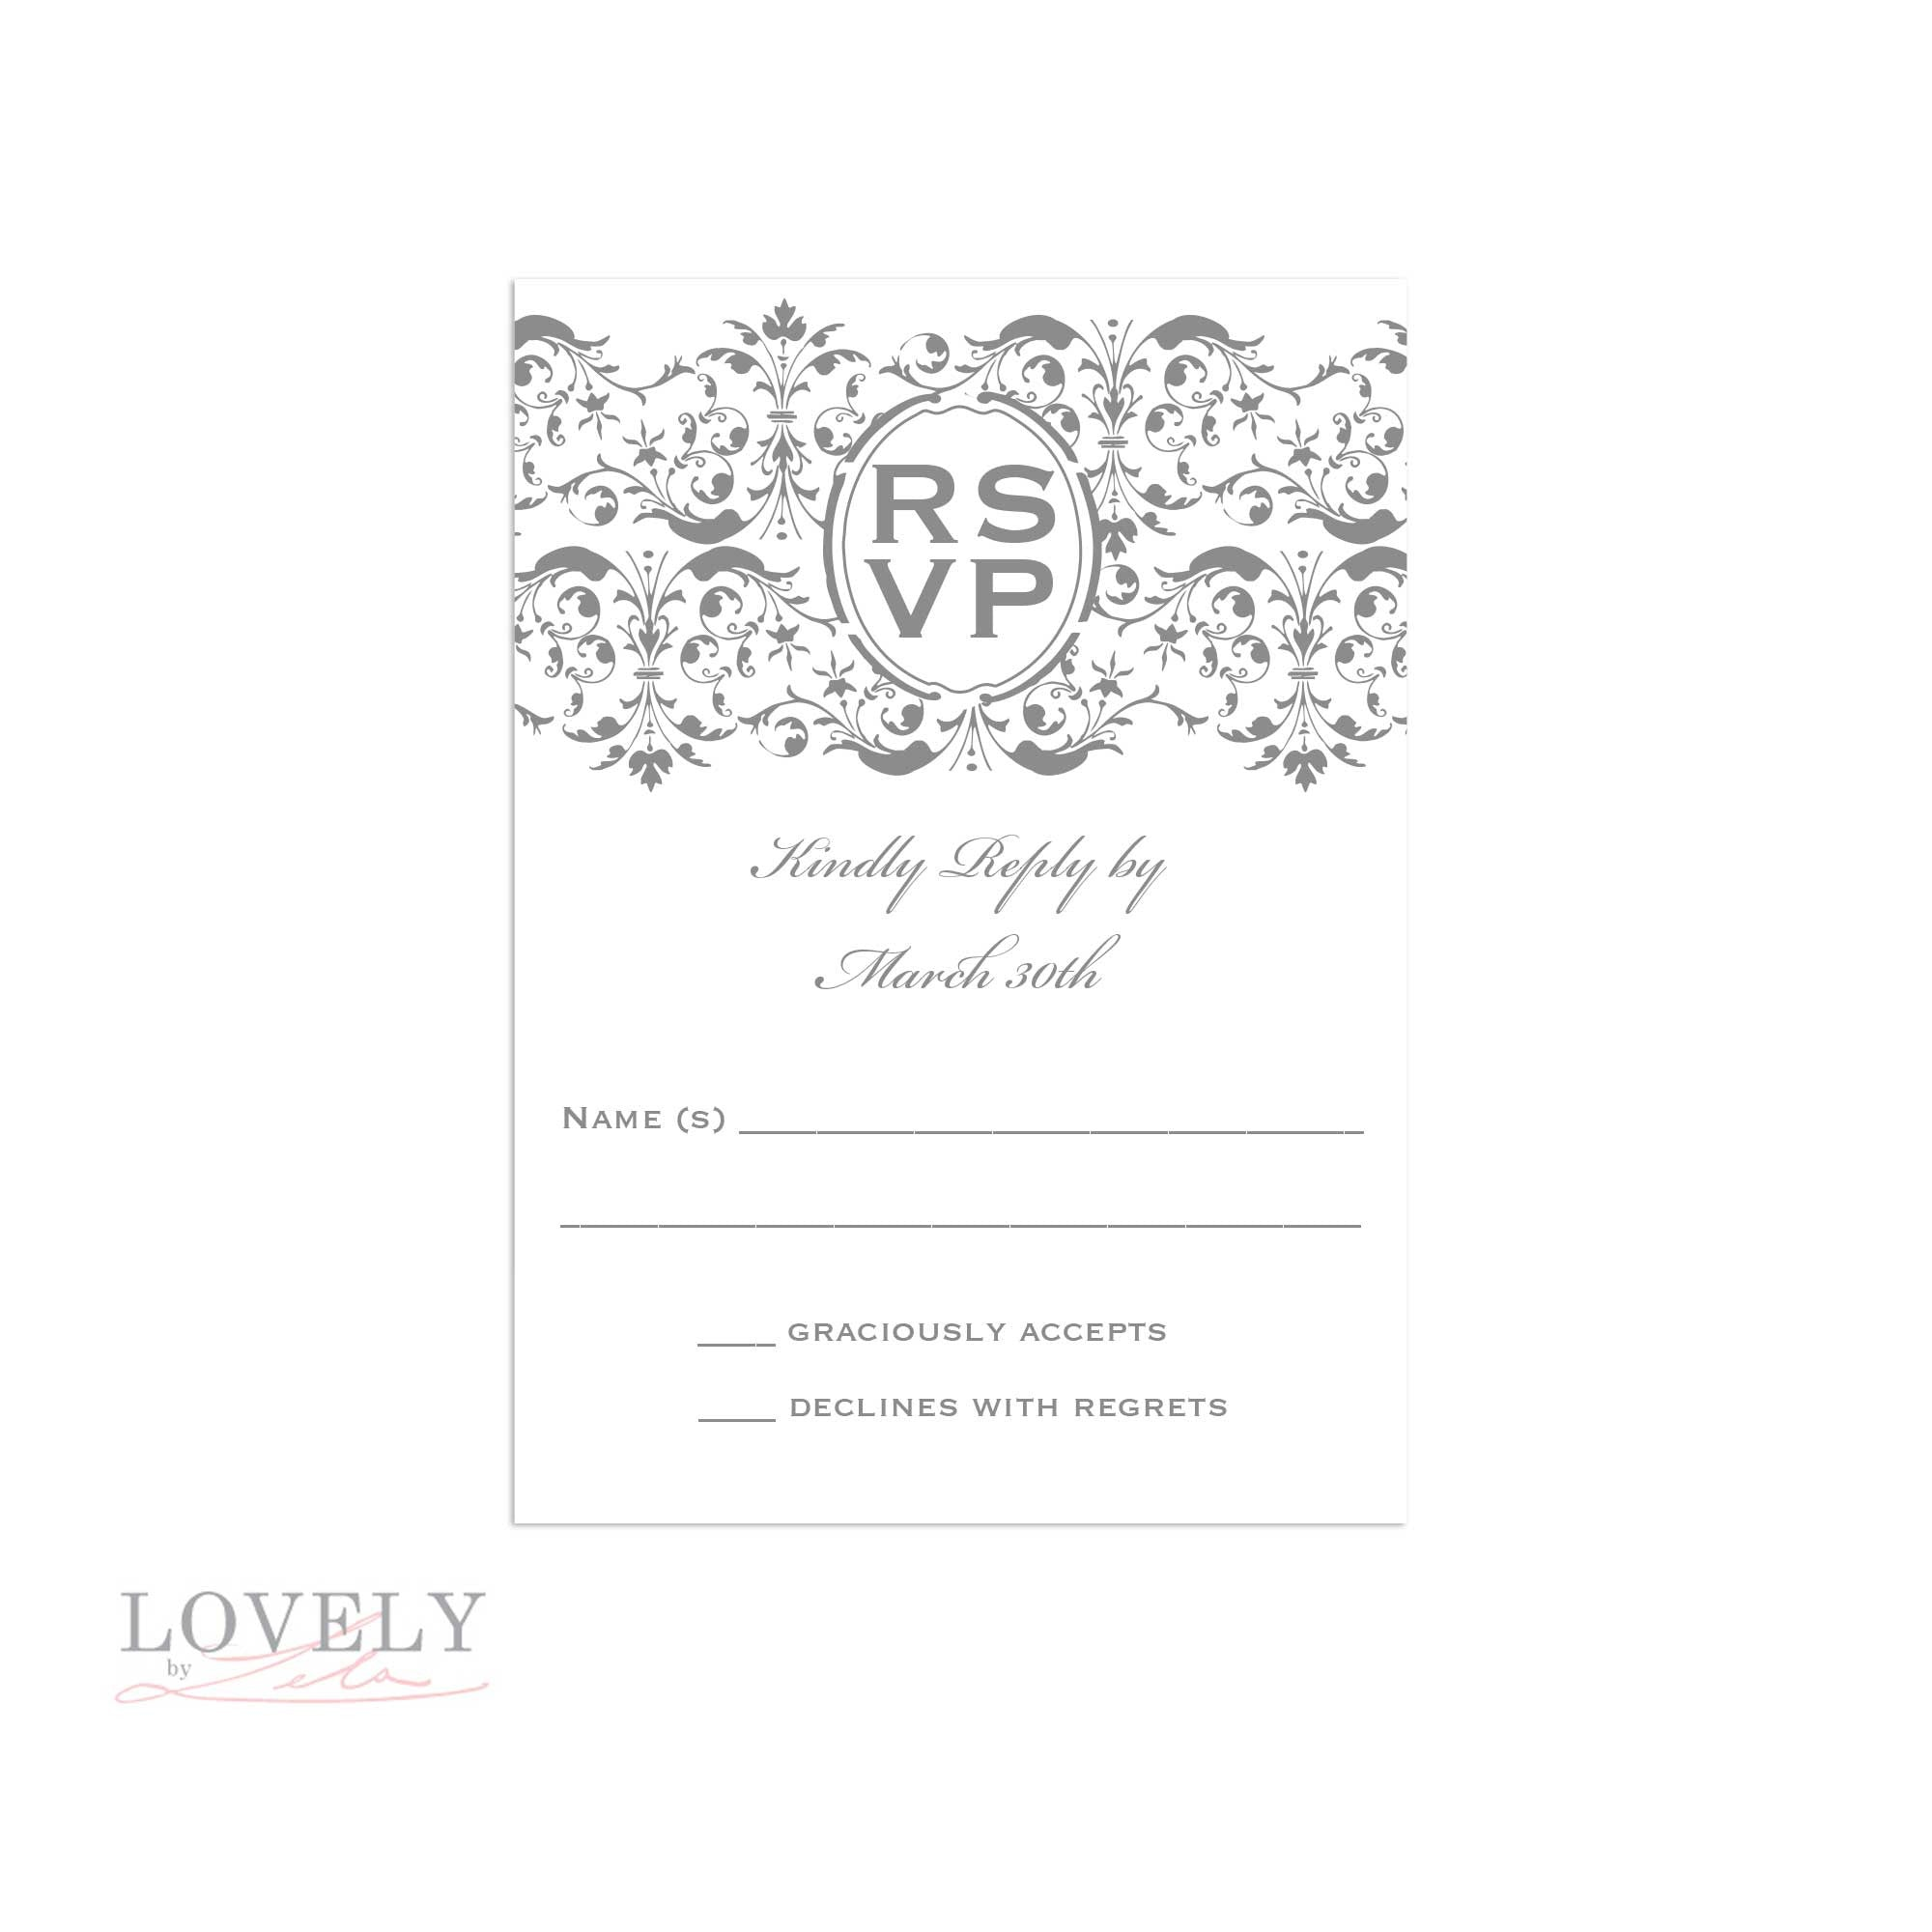 RSVP Card for inside of Boxed Invitations